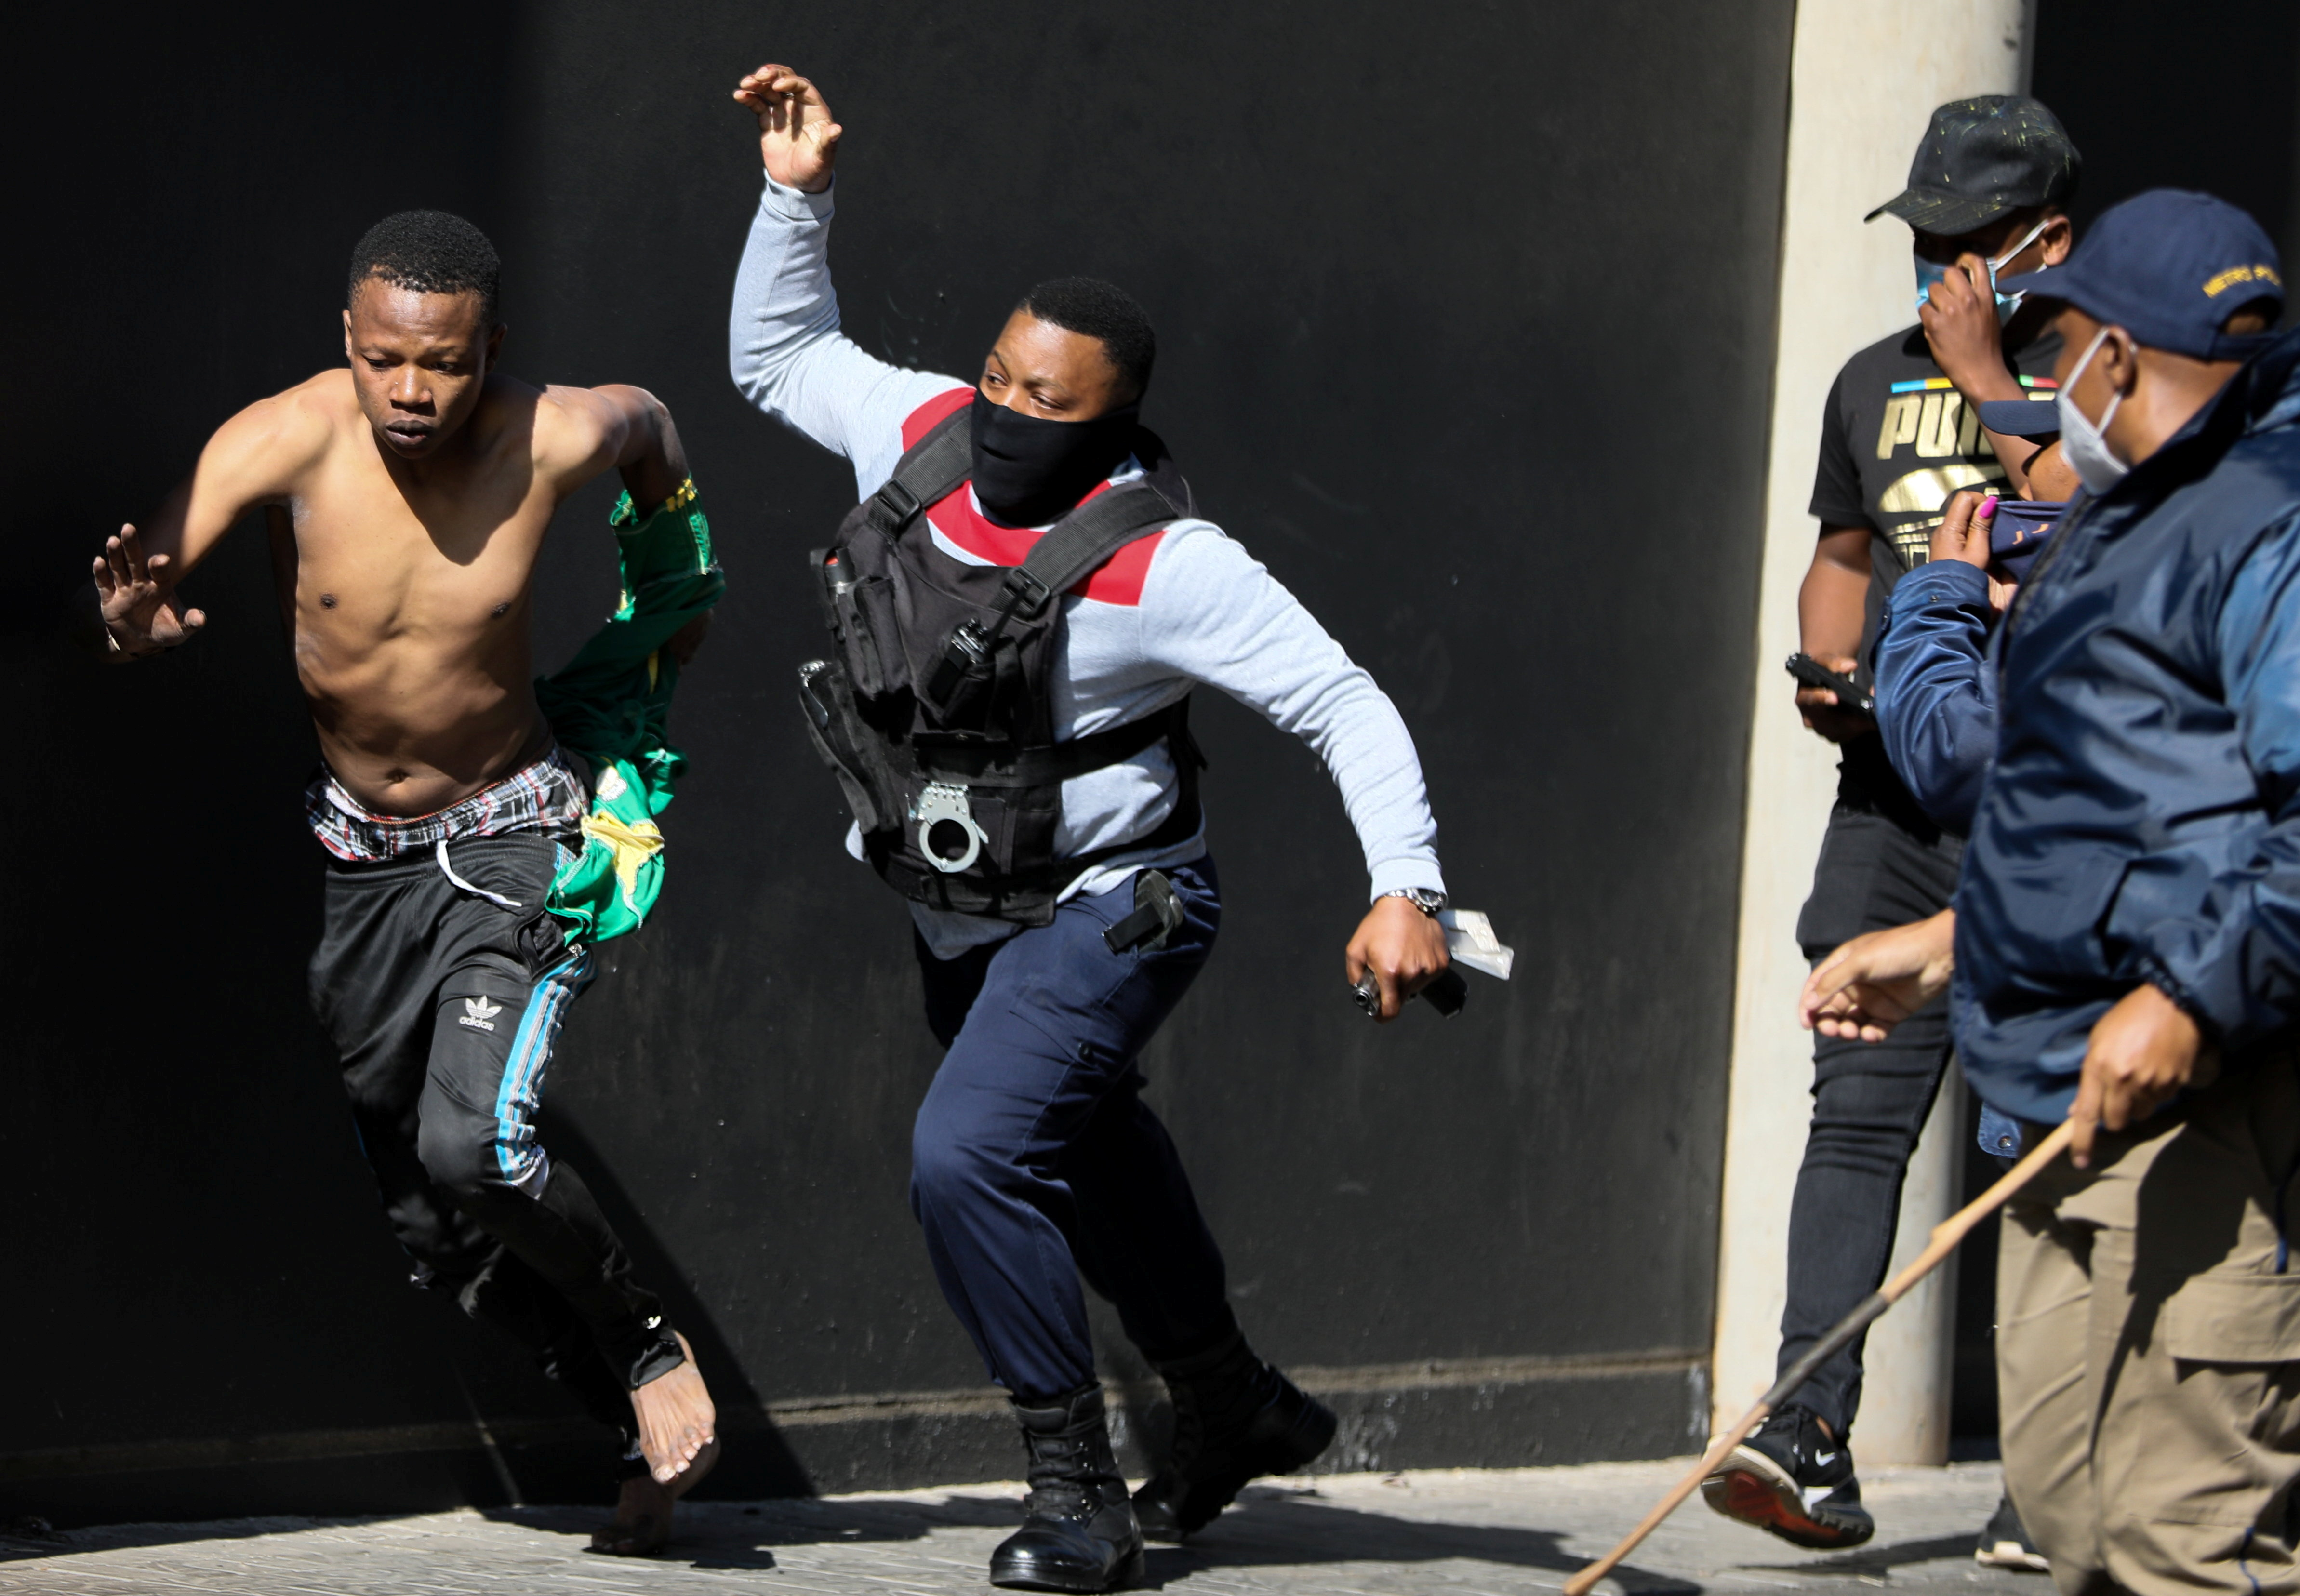 A police officer detains a suspect during a protest, as violence following the jailing of former South African President Jacob Zuma spread to the country's main economic hub in Johannesburg, South Africa, July 11, 2021. REUTERS/Sumaya Hisham